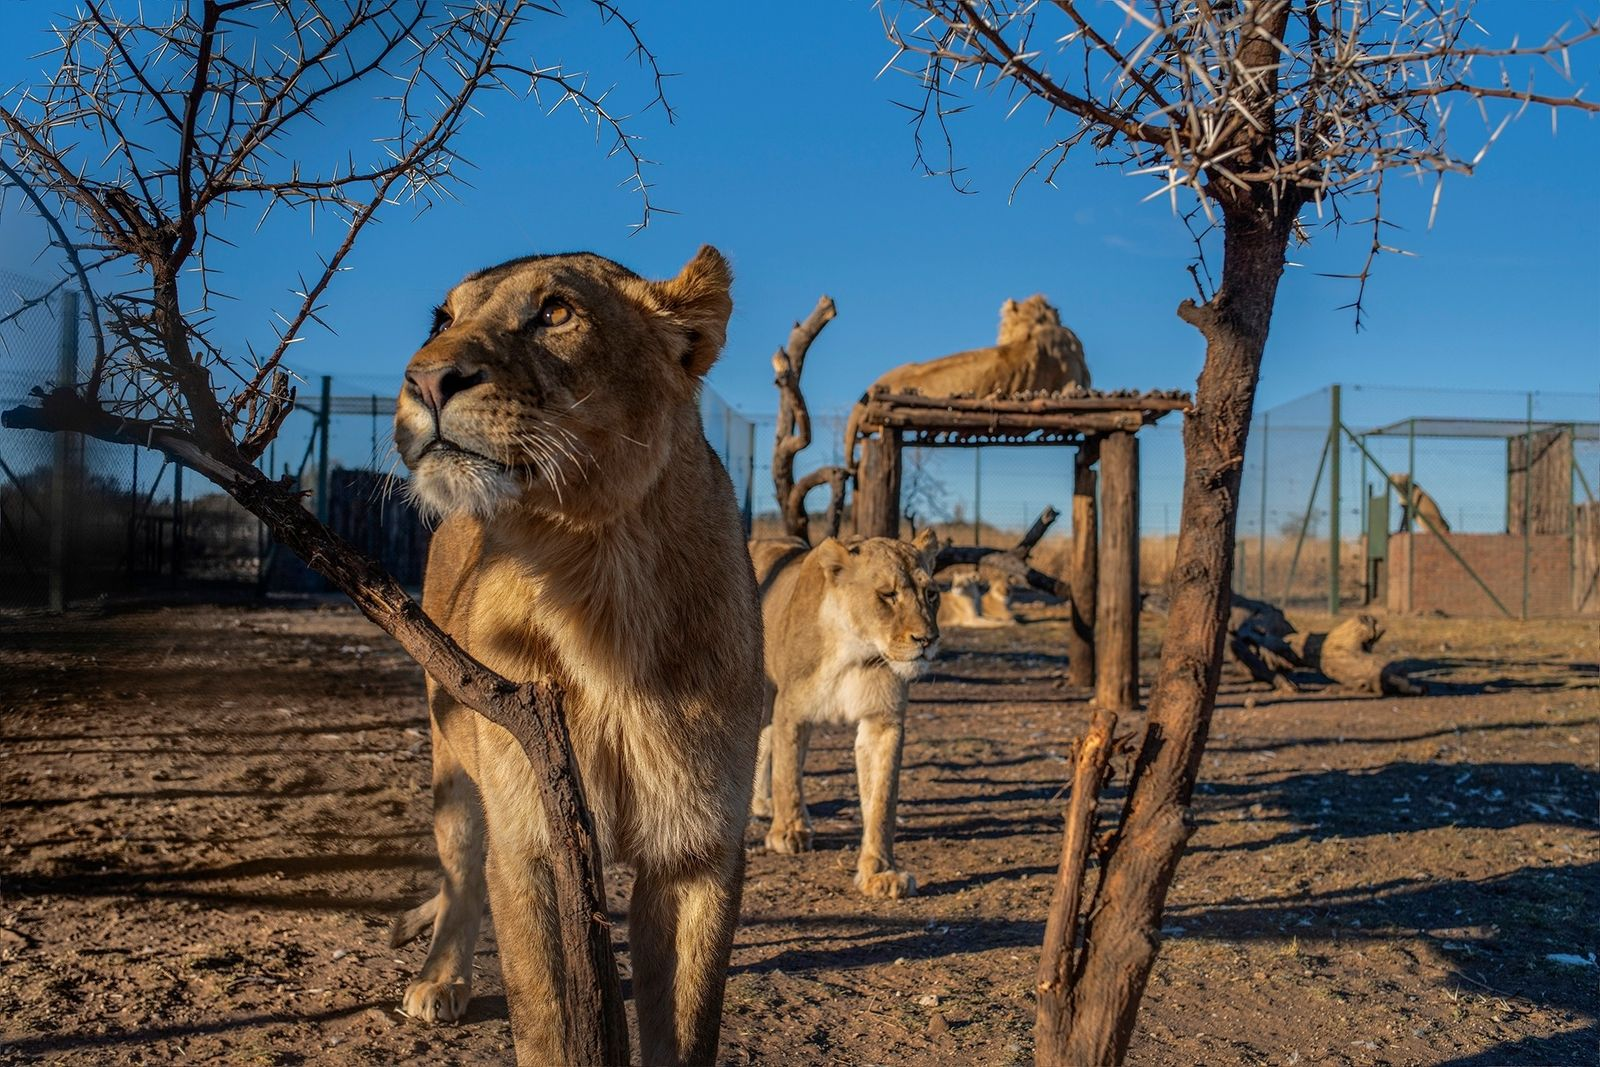 During an April 2019 welfare inspection of Pienika Farm, in South Africa's North West Province, many ...